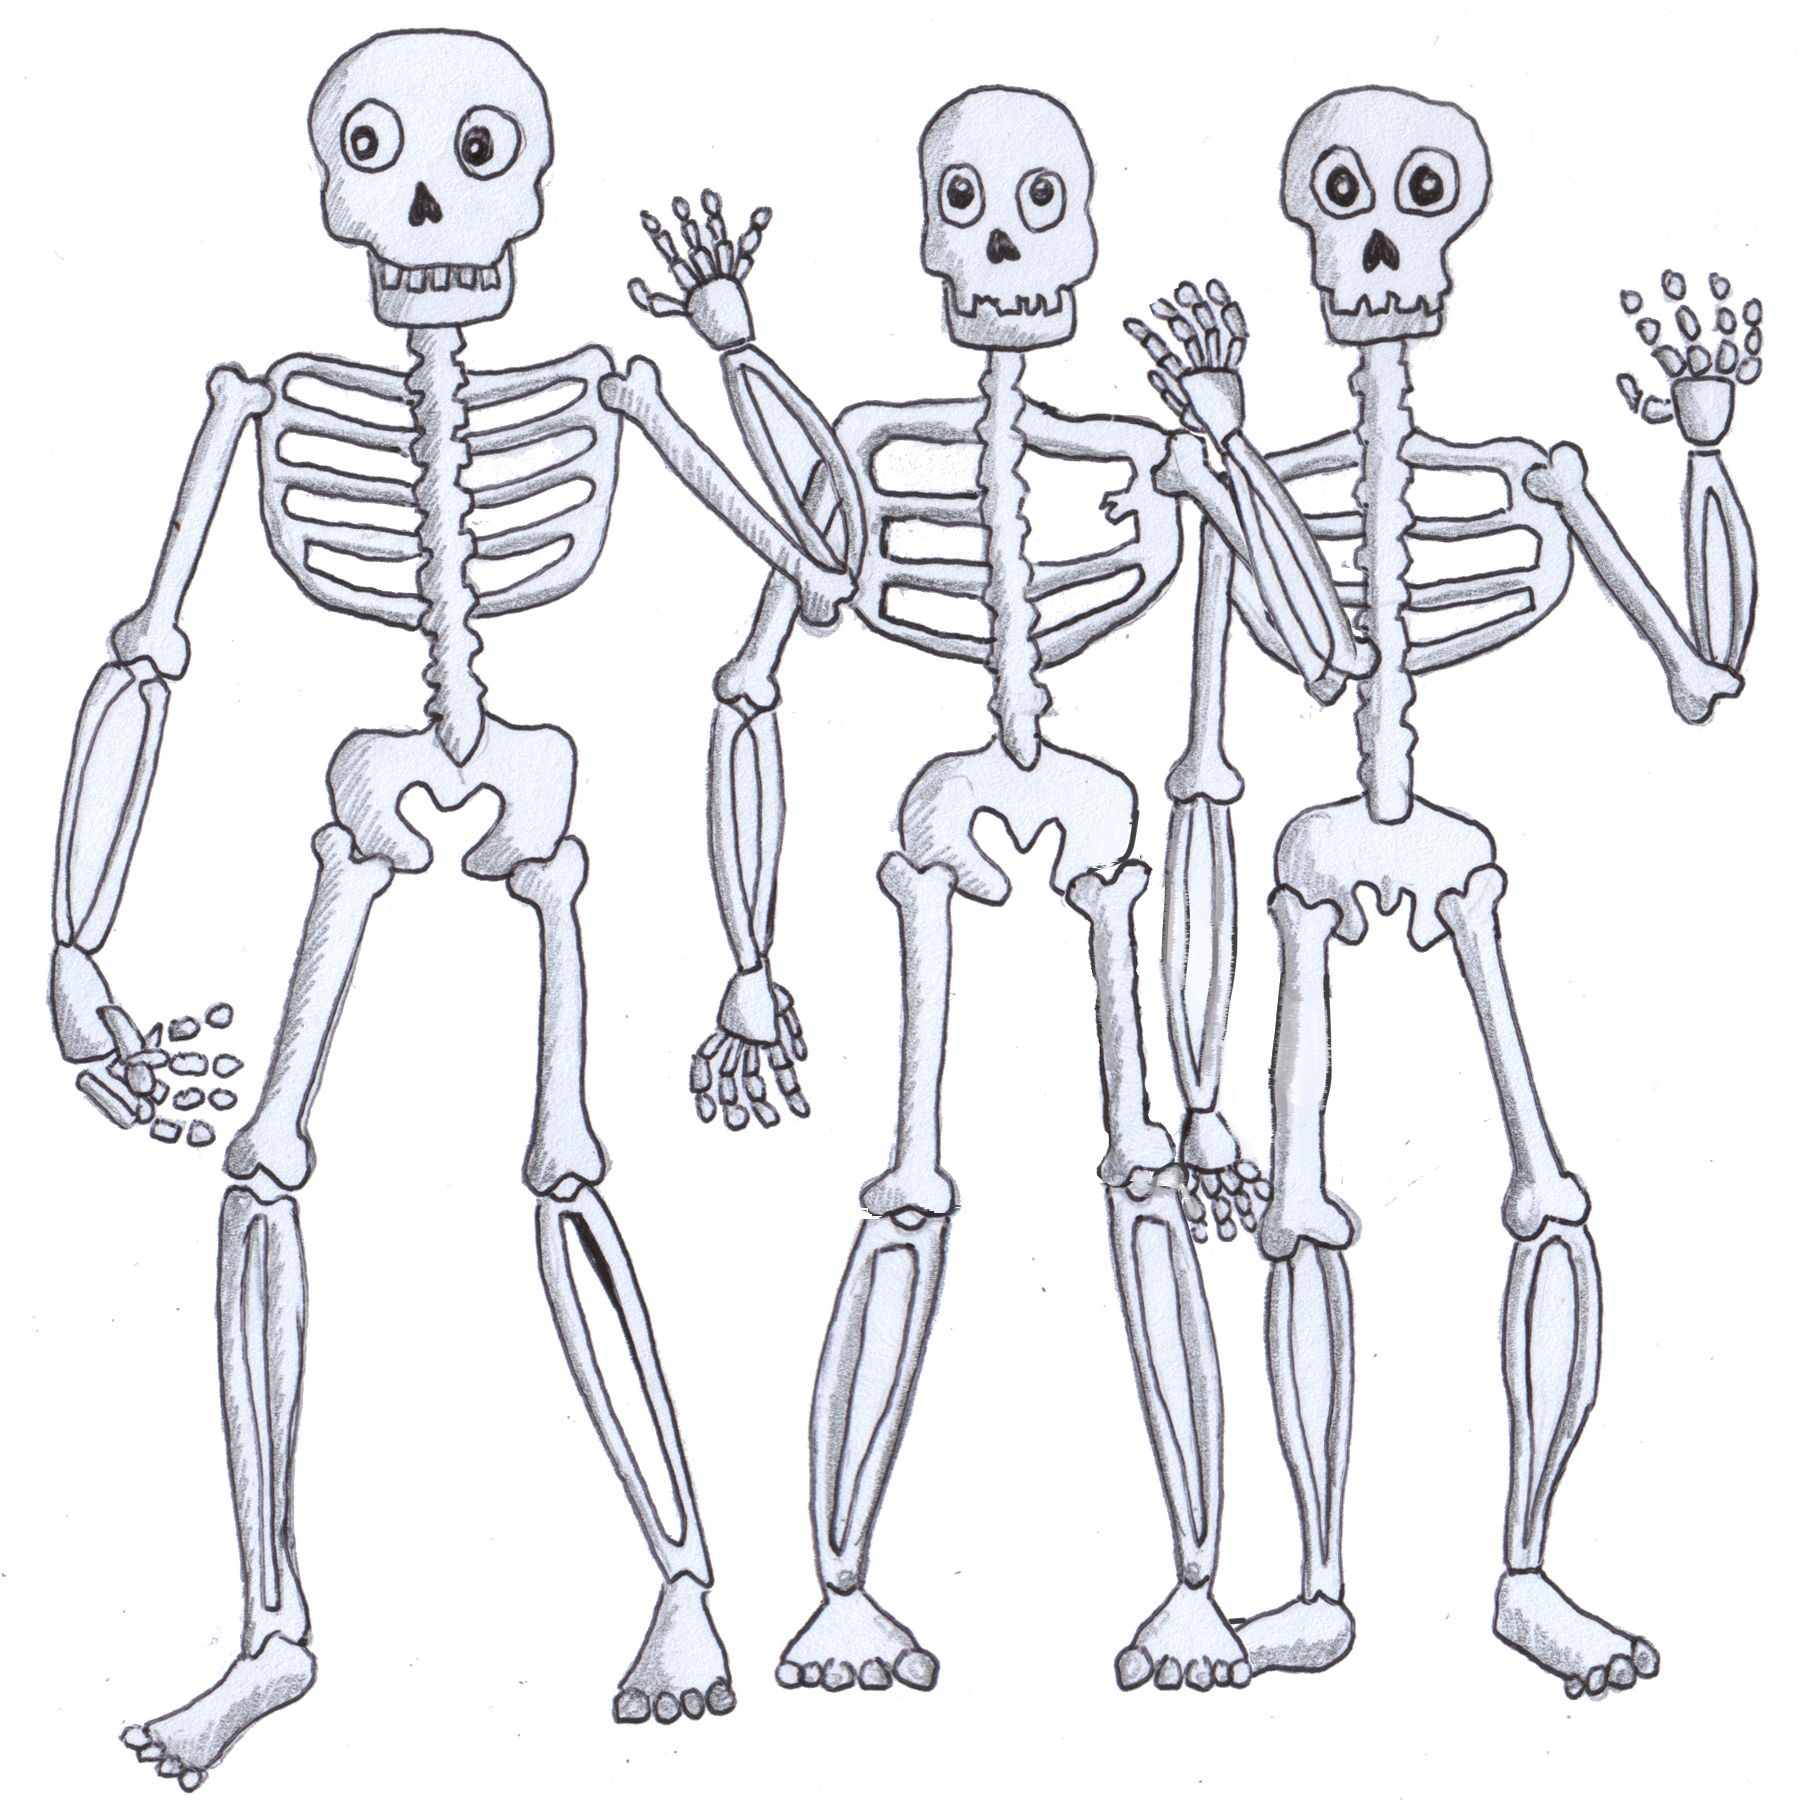 3 skeletons with legs